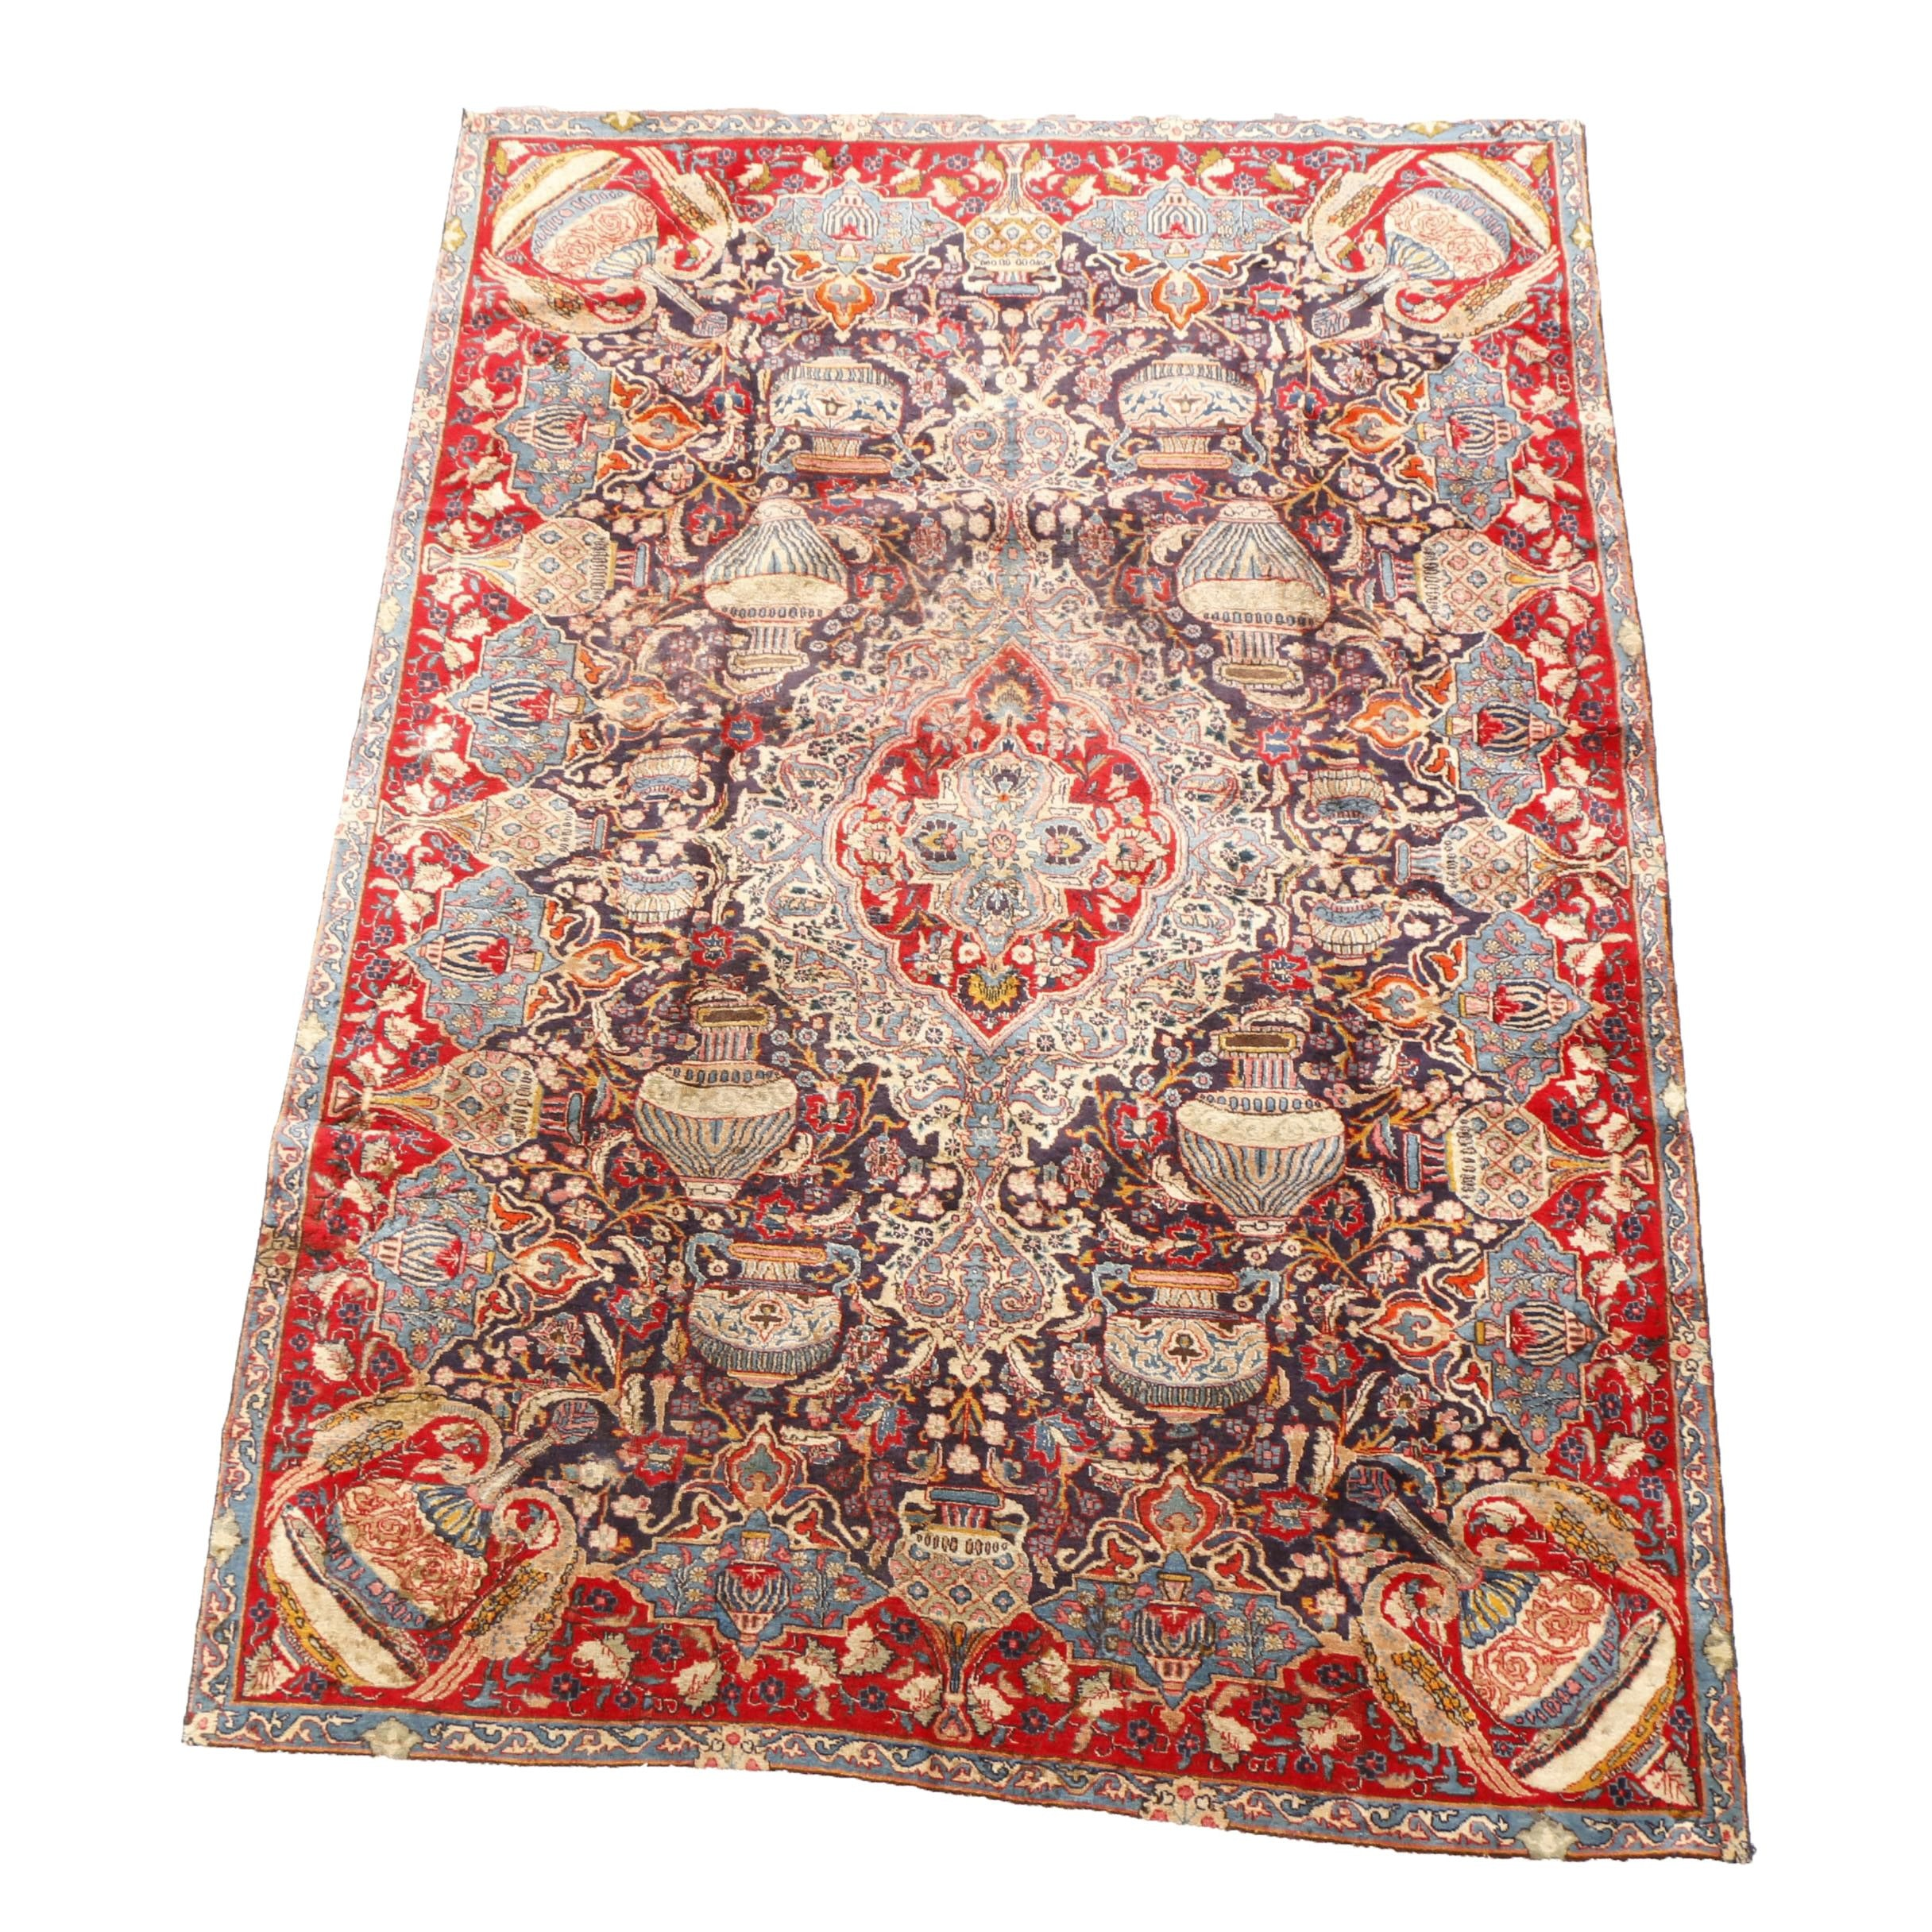 Hand-Knotted Persian Archaeological Pictorial Kashmar Area Rug